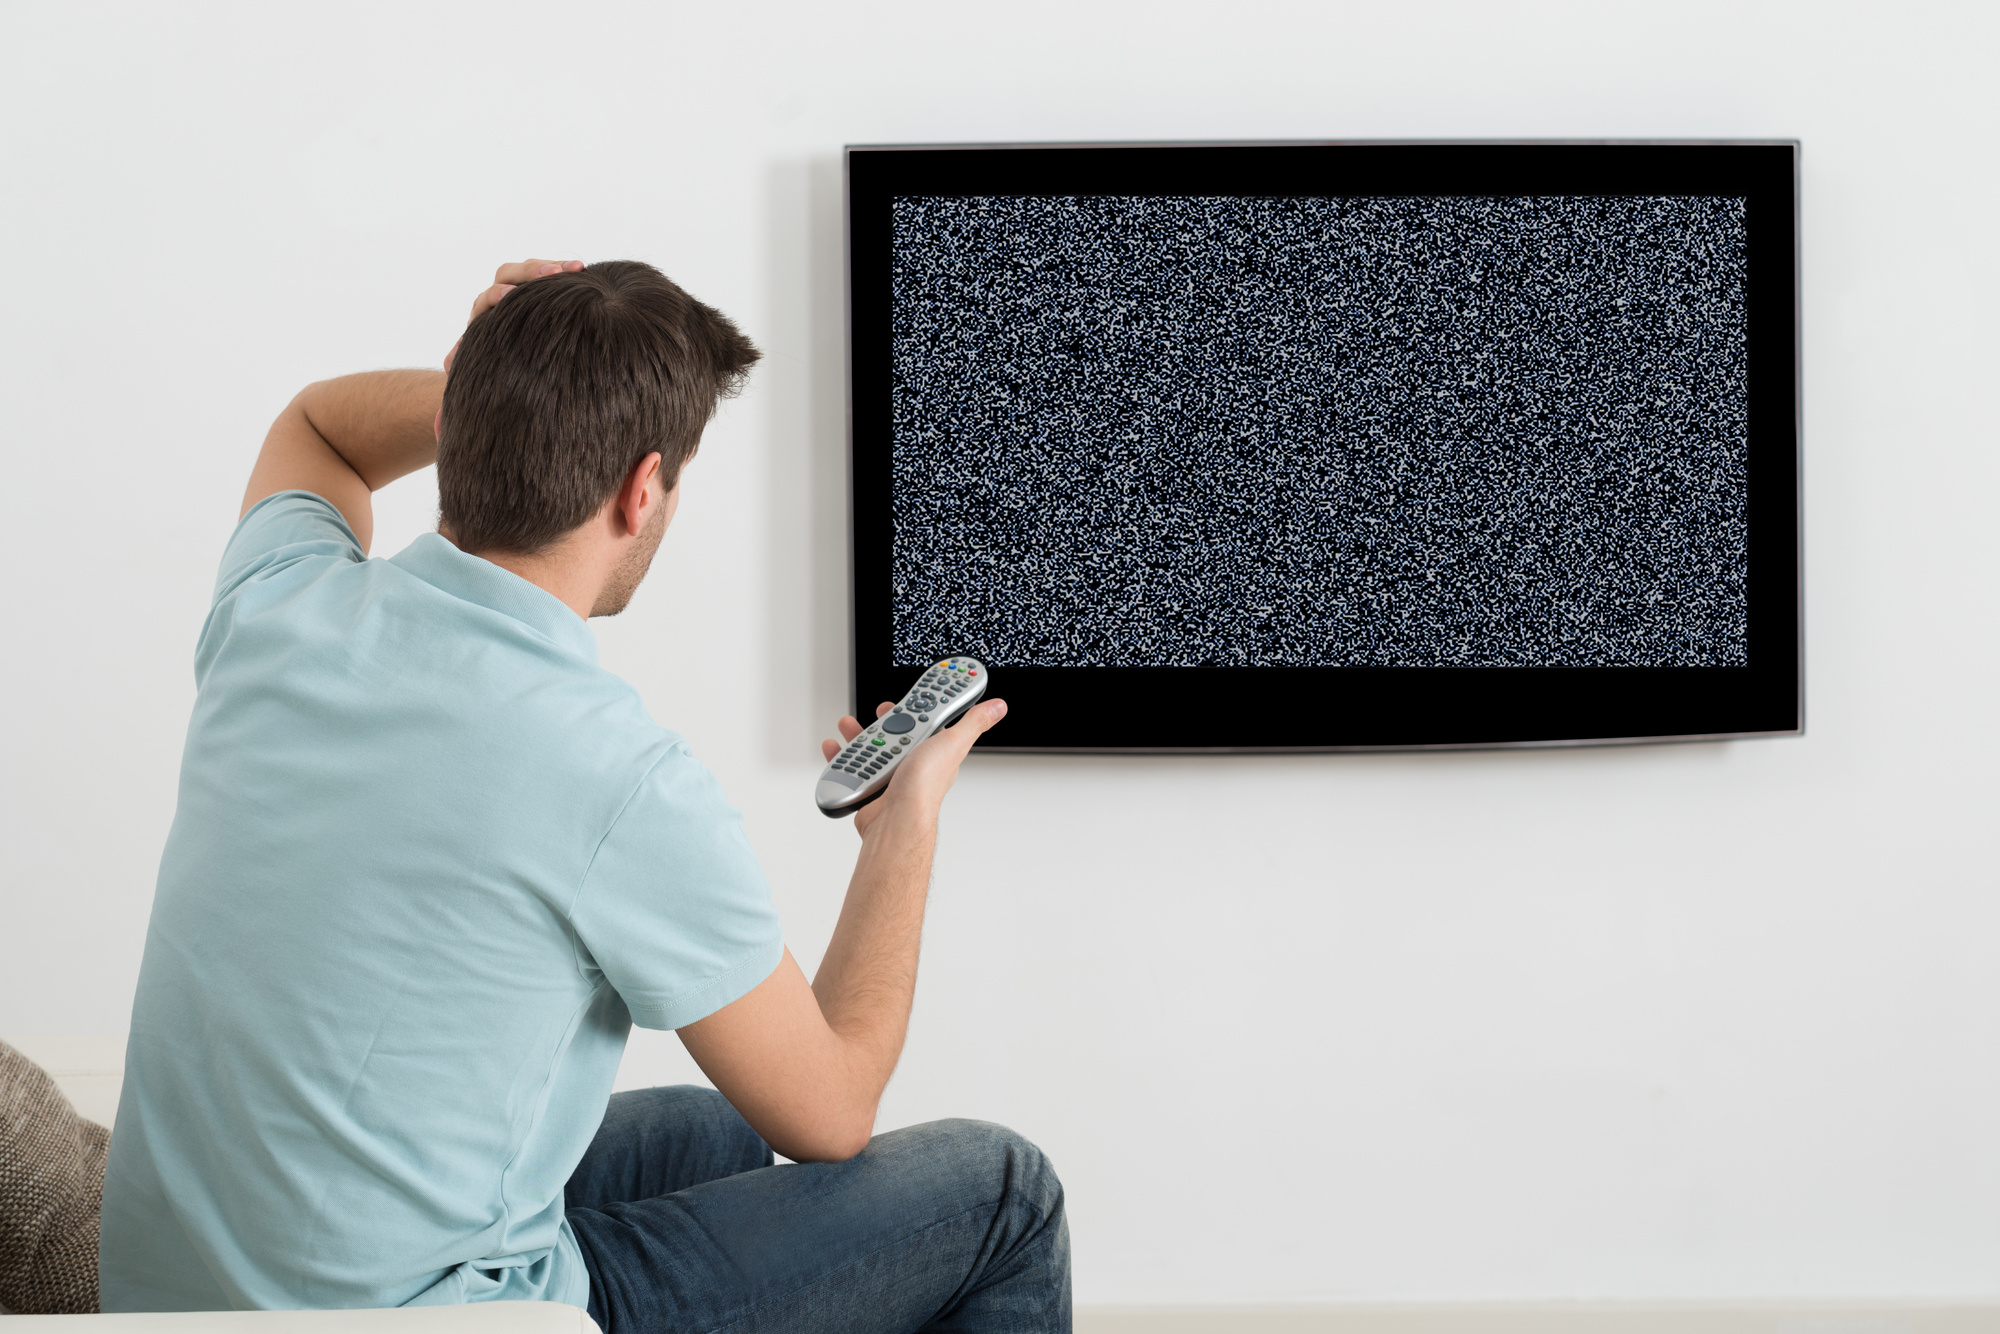 No TV Signal? How to Troubleshoot Your TV Antenna Problems